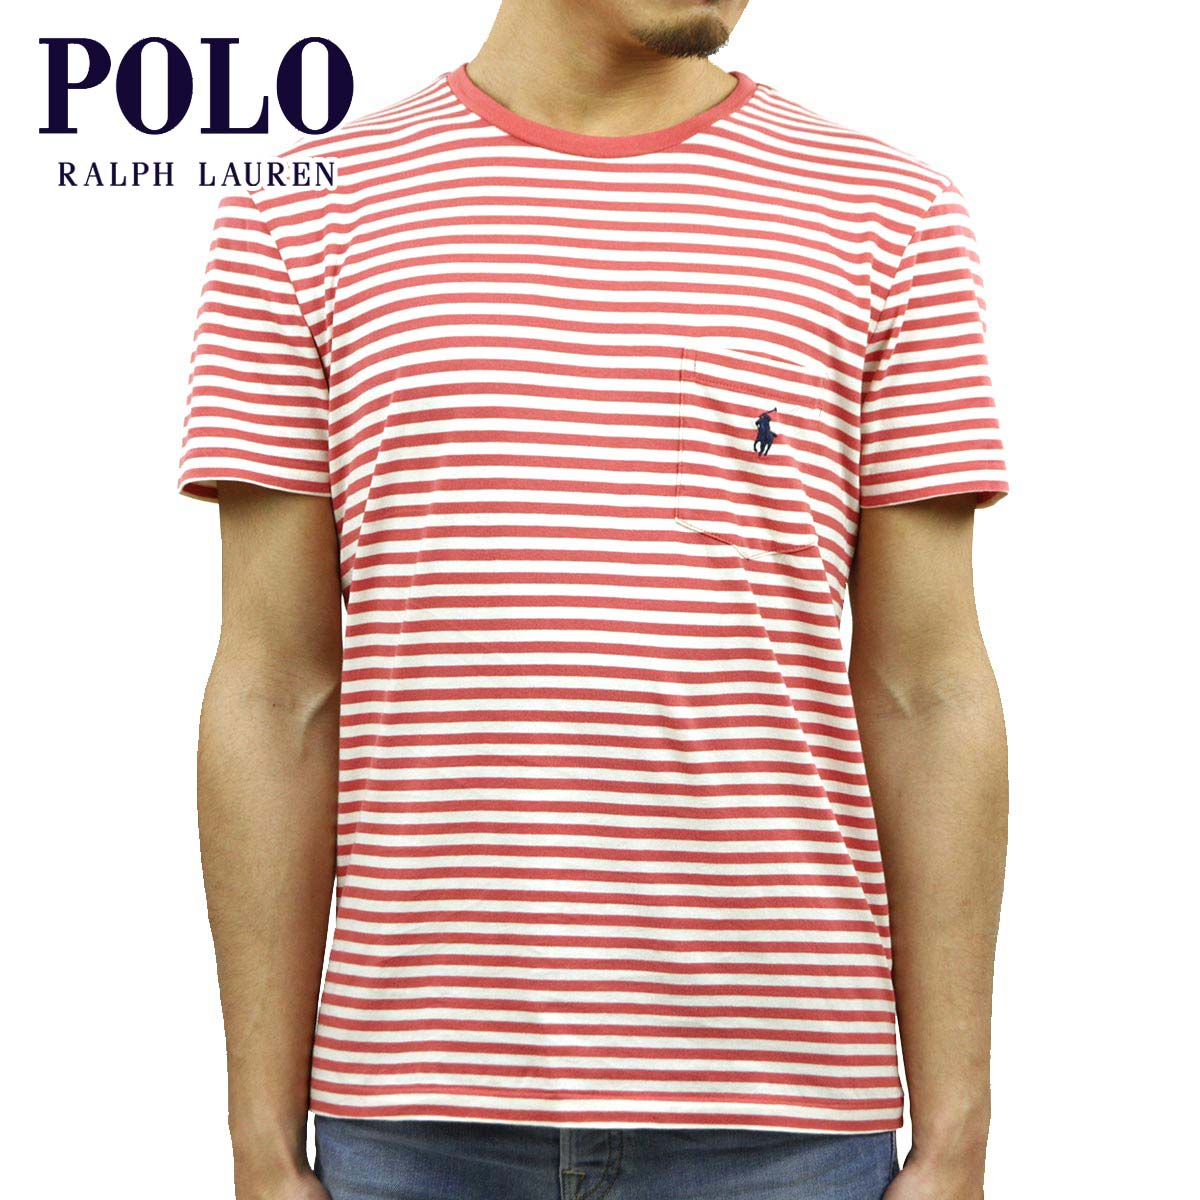 e376d144 Rakuten Ichiba shop MIXON: Polo Ralph Lauren POLO RALPH LAUREN regular  article men short sleeves T-shirt Striped Pocket T-Shirt RED | Rakuten  Global Market